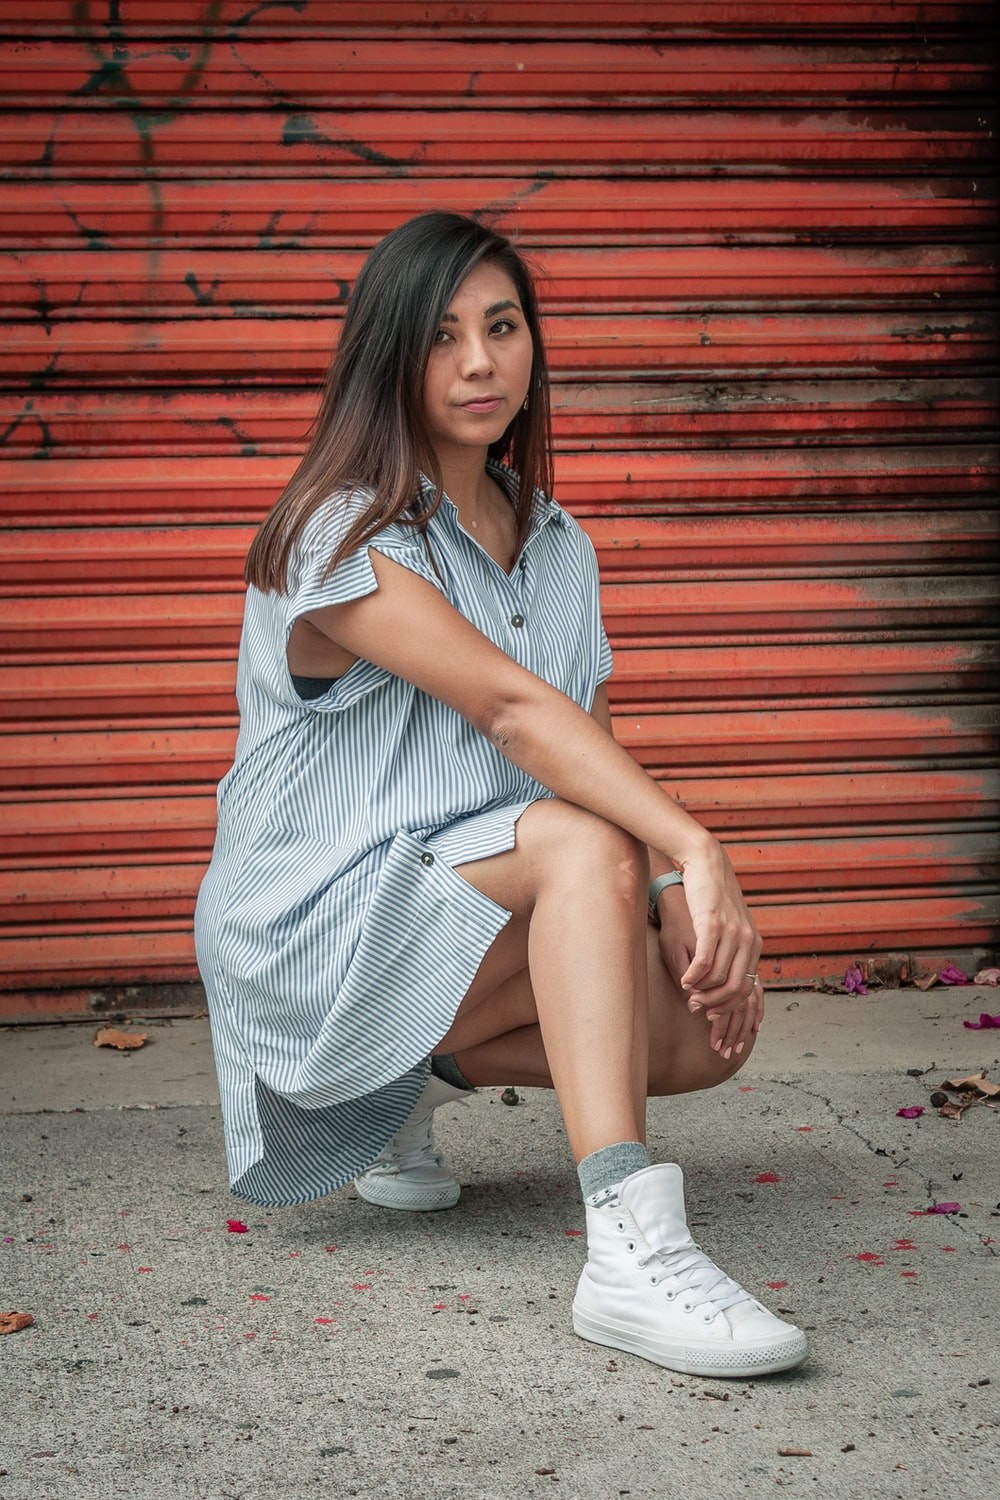 woman in white dress sitting on concrete floor